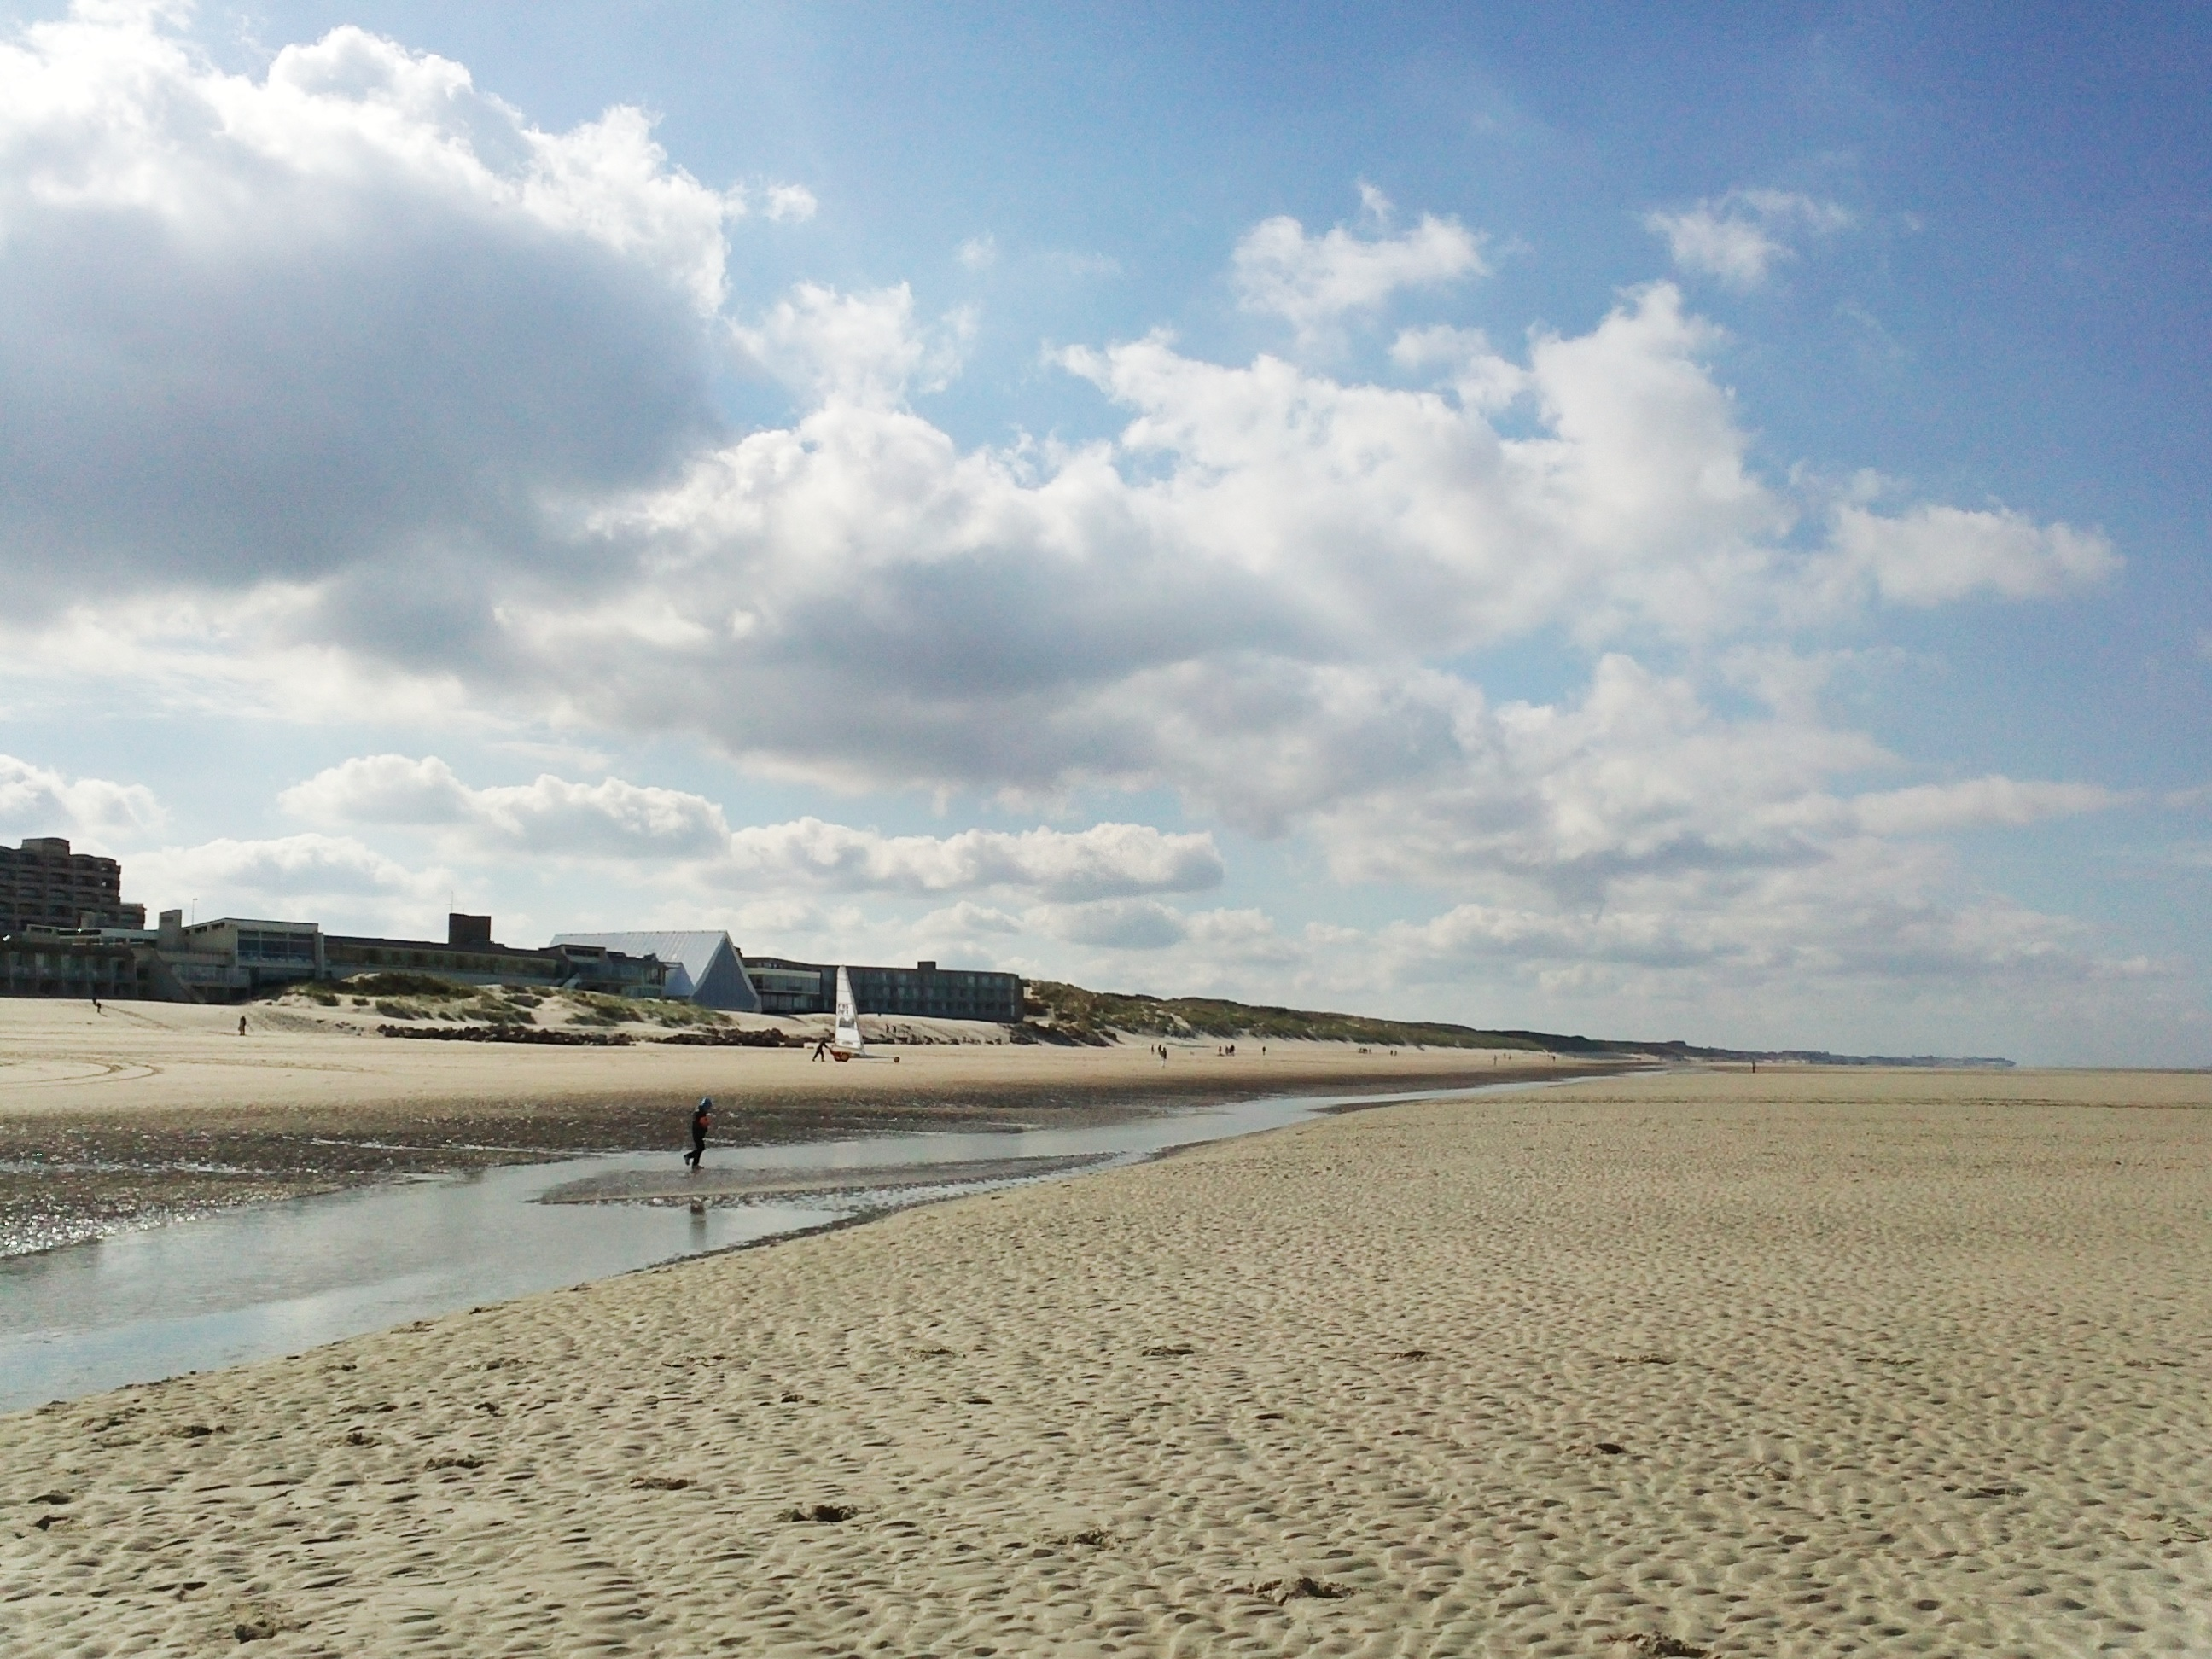 hotels on the beach at Le Touquet